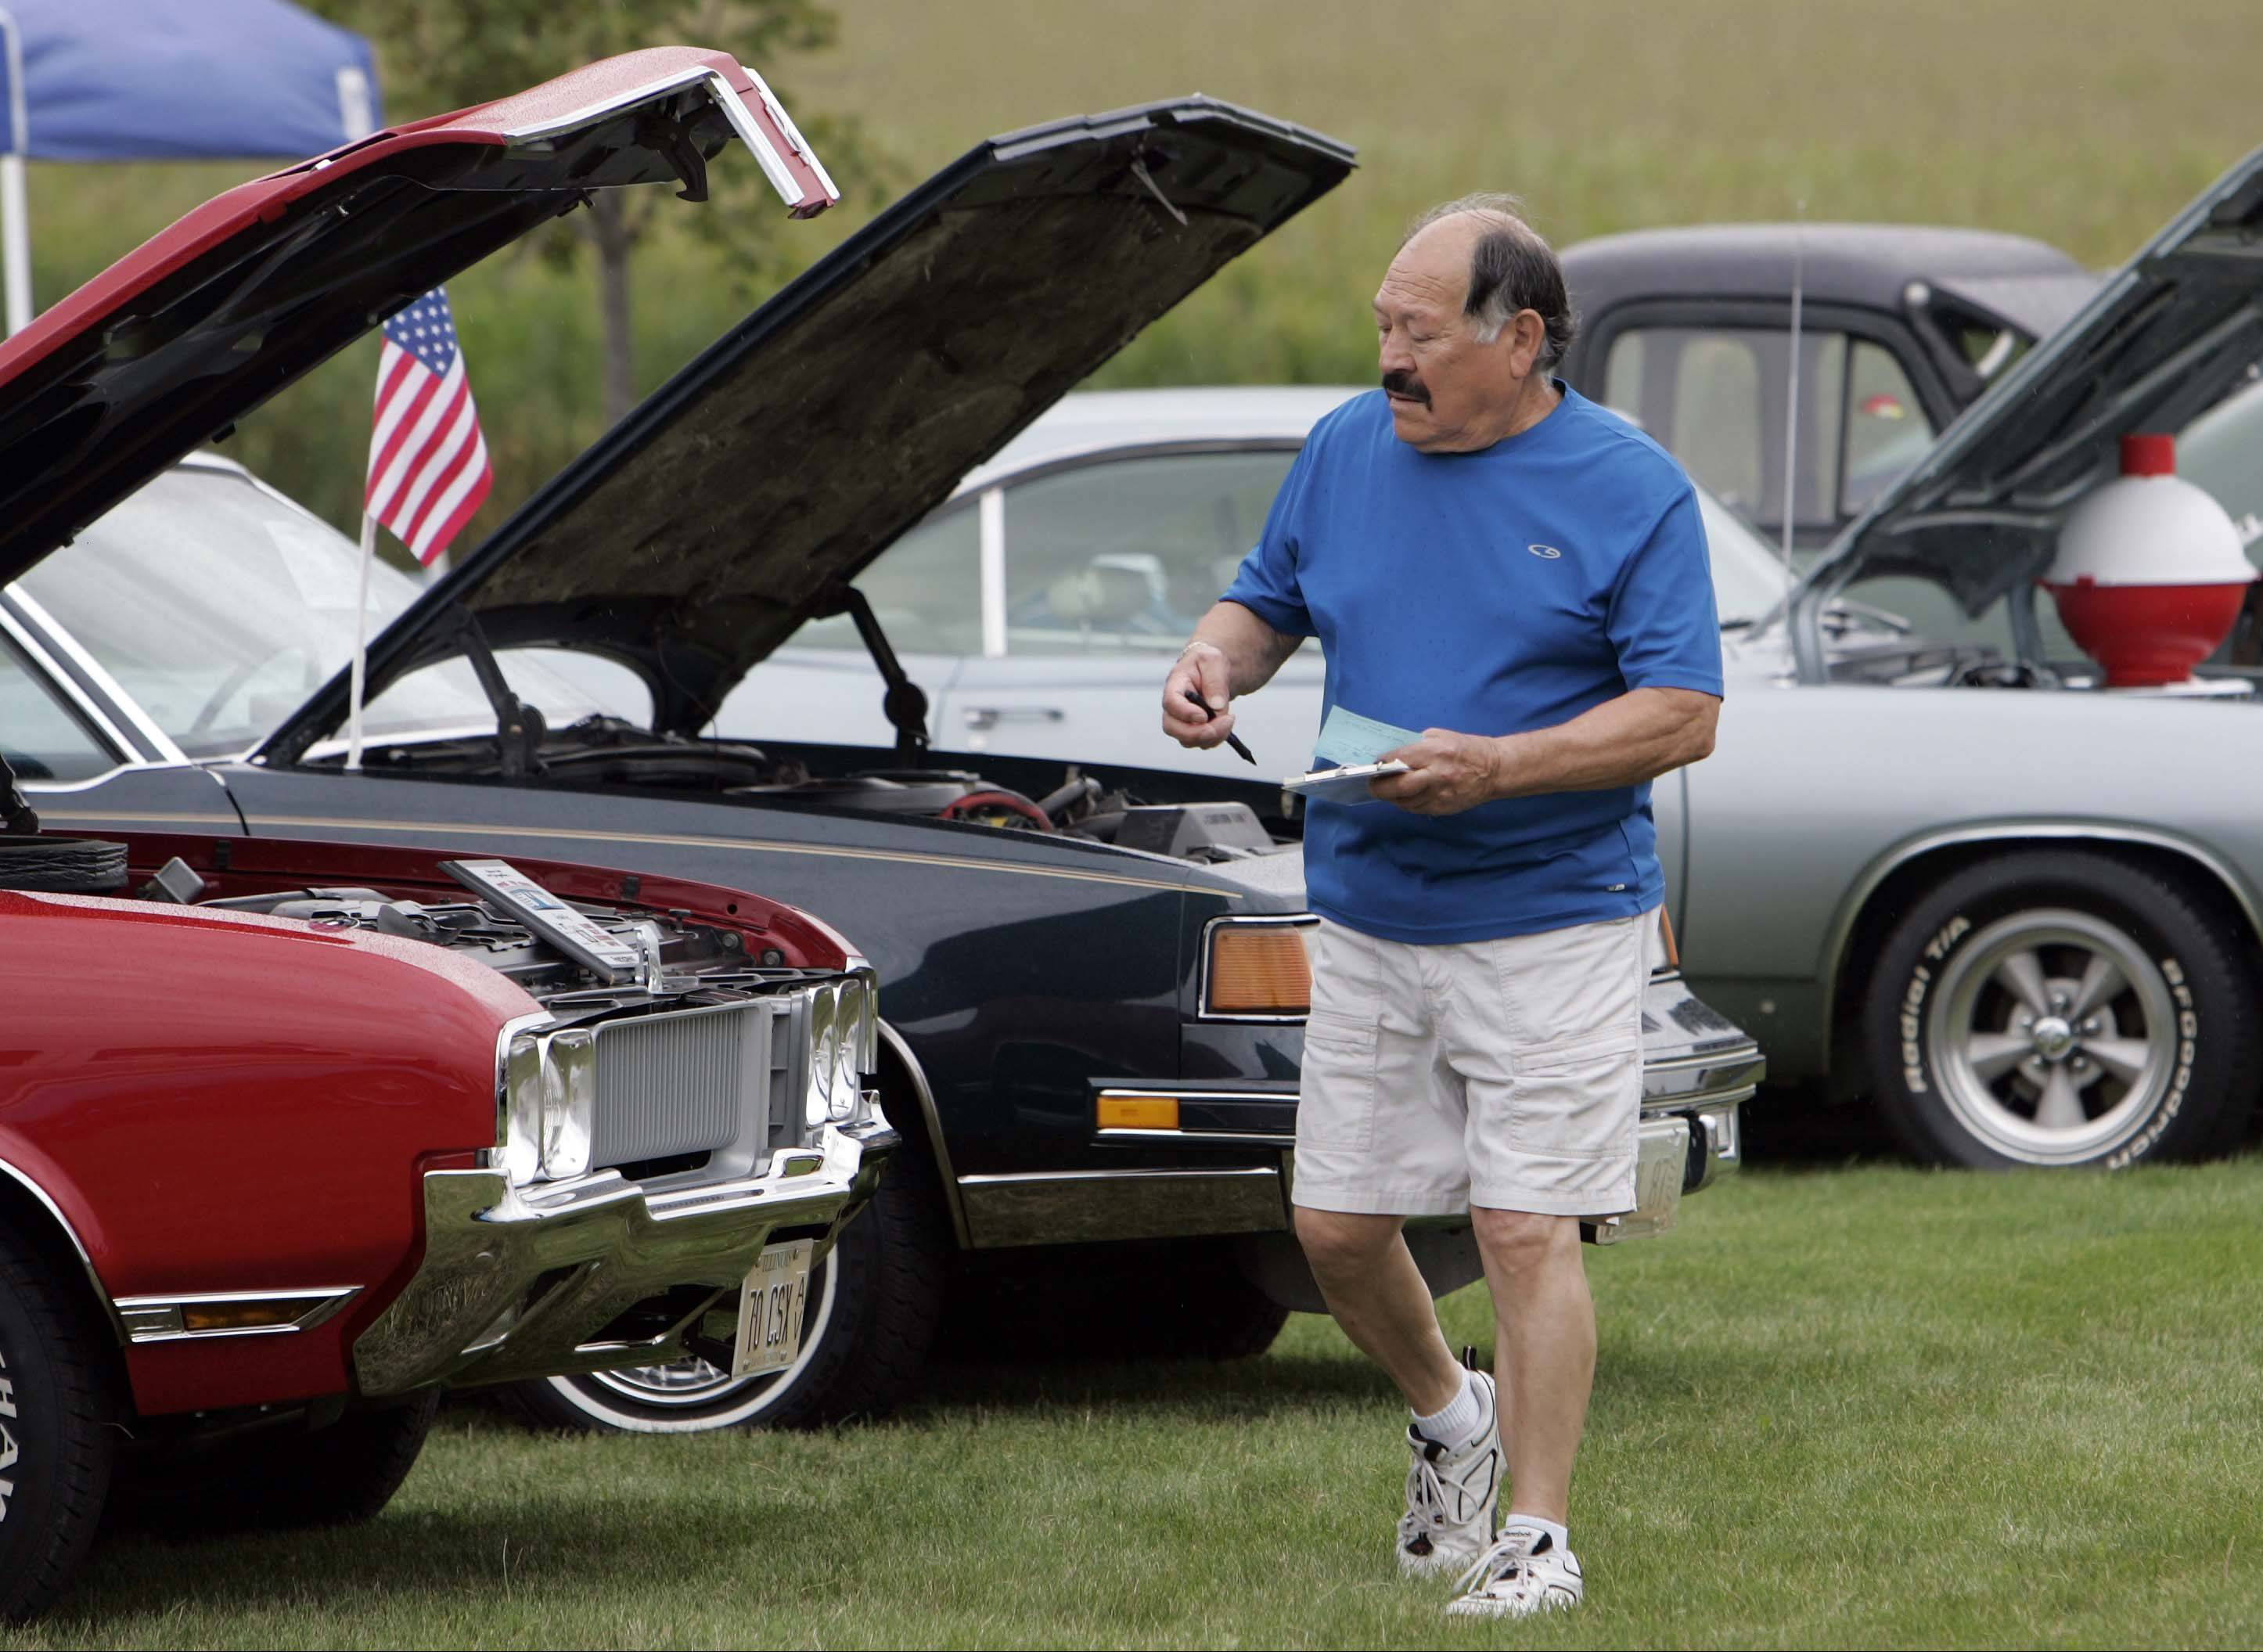 Lee Gomez of St. Charles gets a look at the cars during Kane County Sheriff Pat Perez�s sixth annual charity car and motorcycle show Saturday in Elburn. Gomez was showing his six-cylinder 1965 Chevrolet Impala.